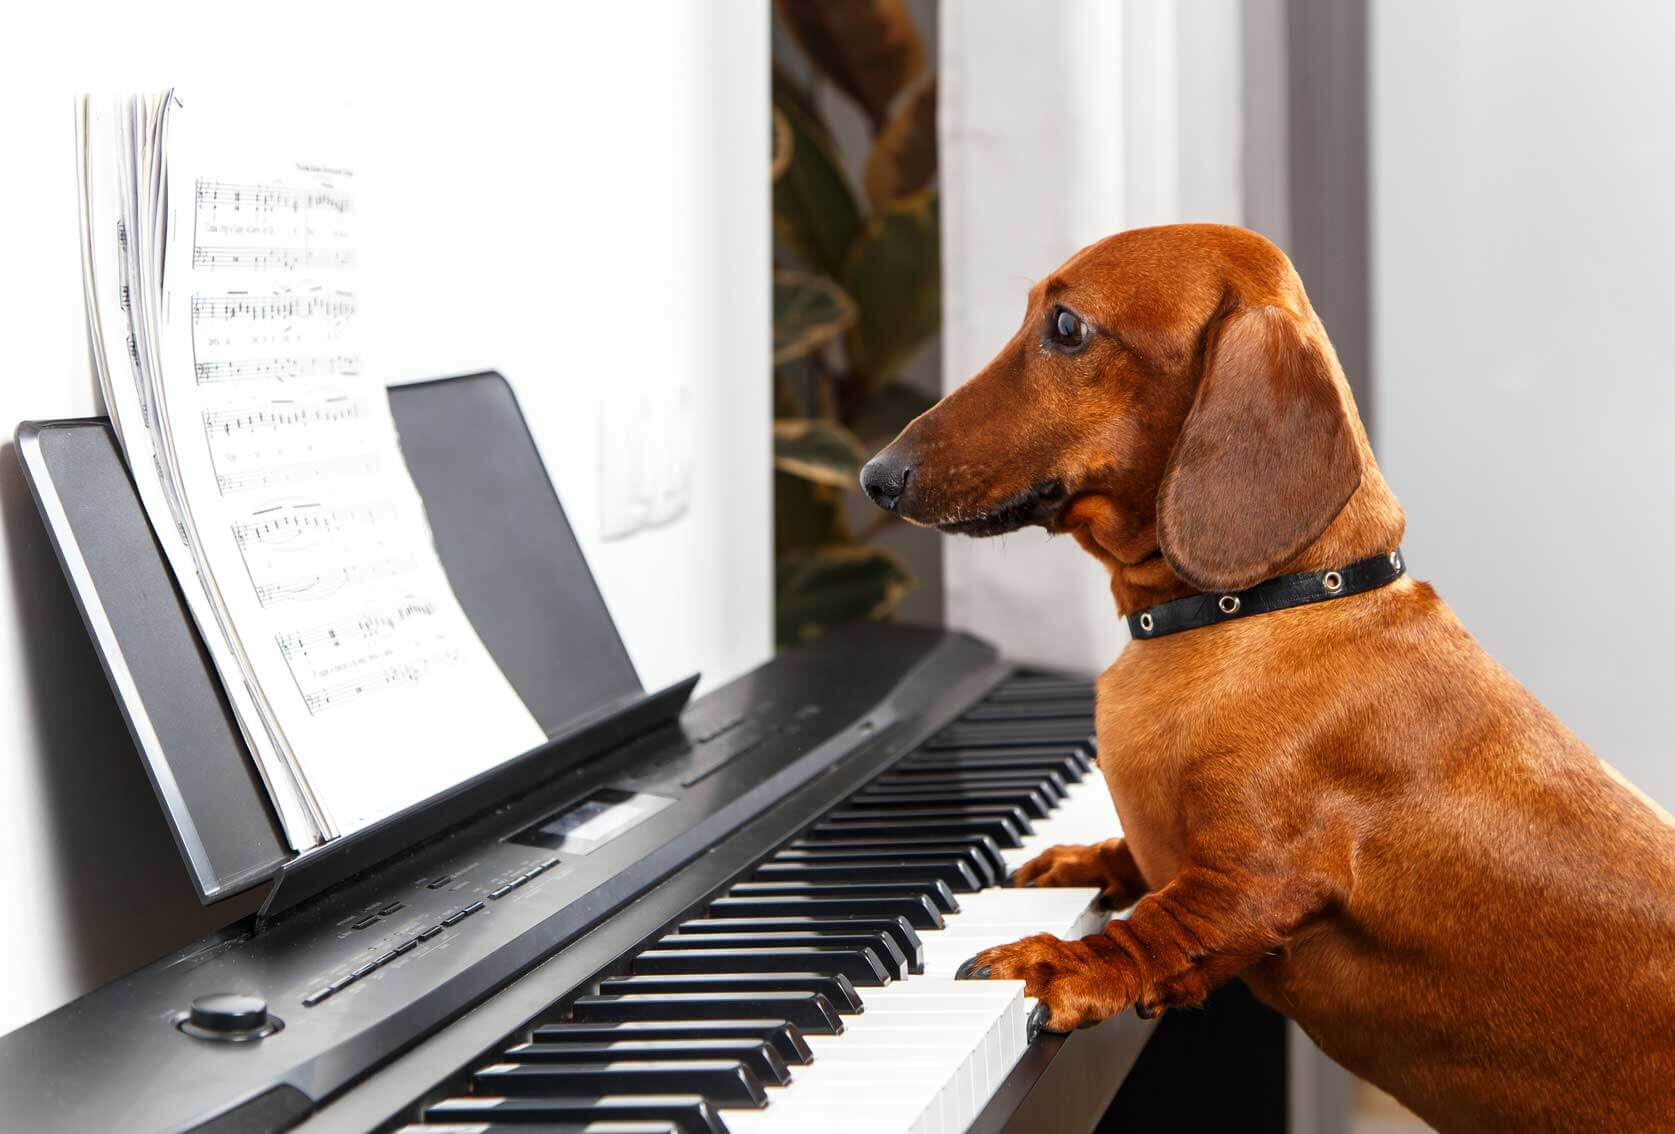 learn Easy Songs To Play On Piano. Our list of easy songs for piano will help you get better.